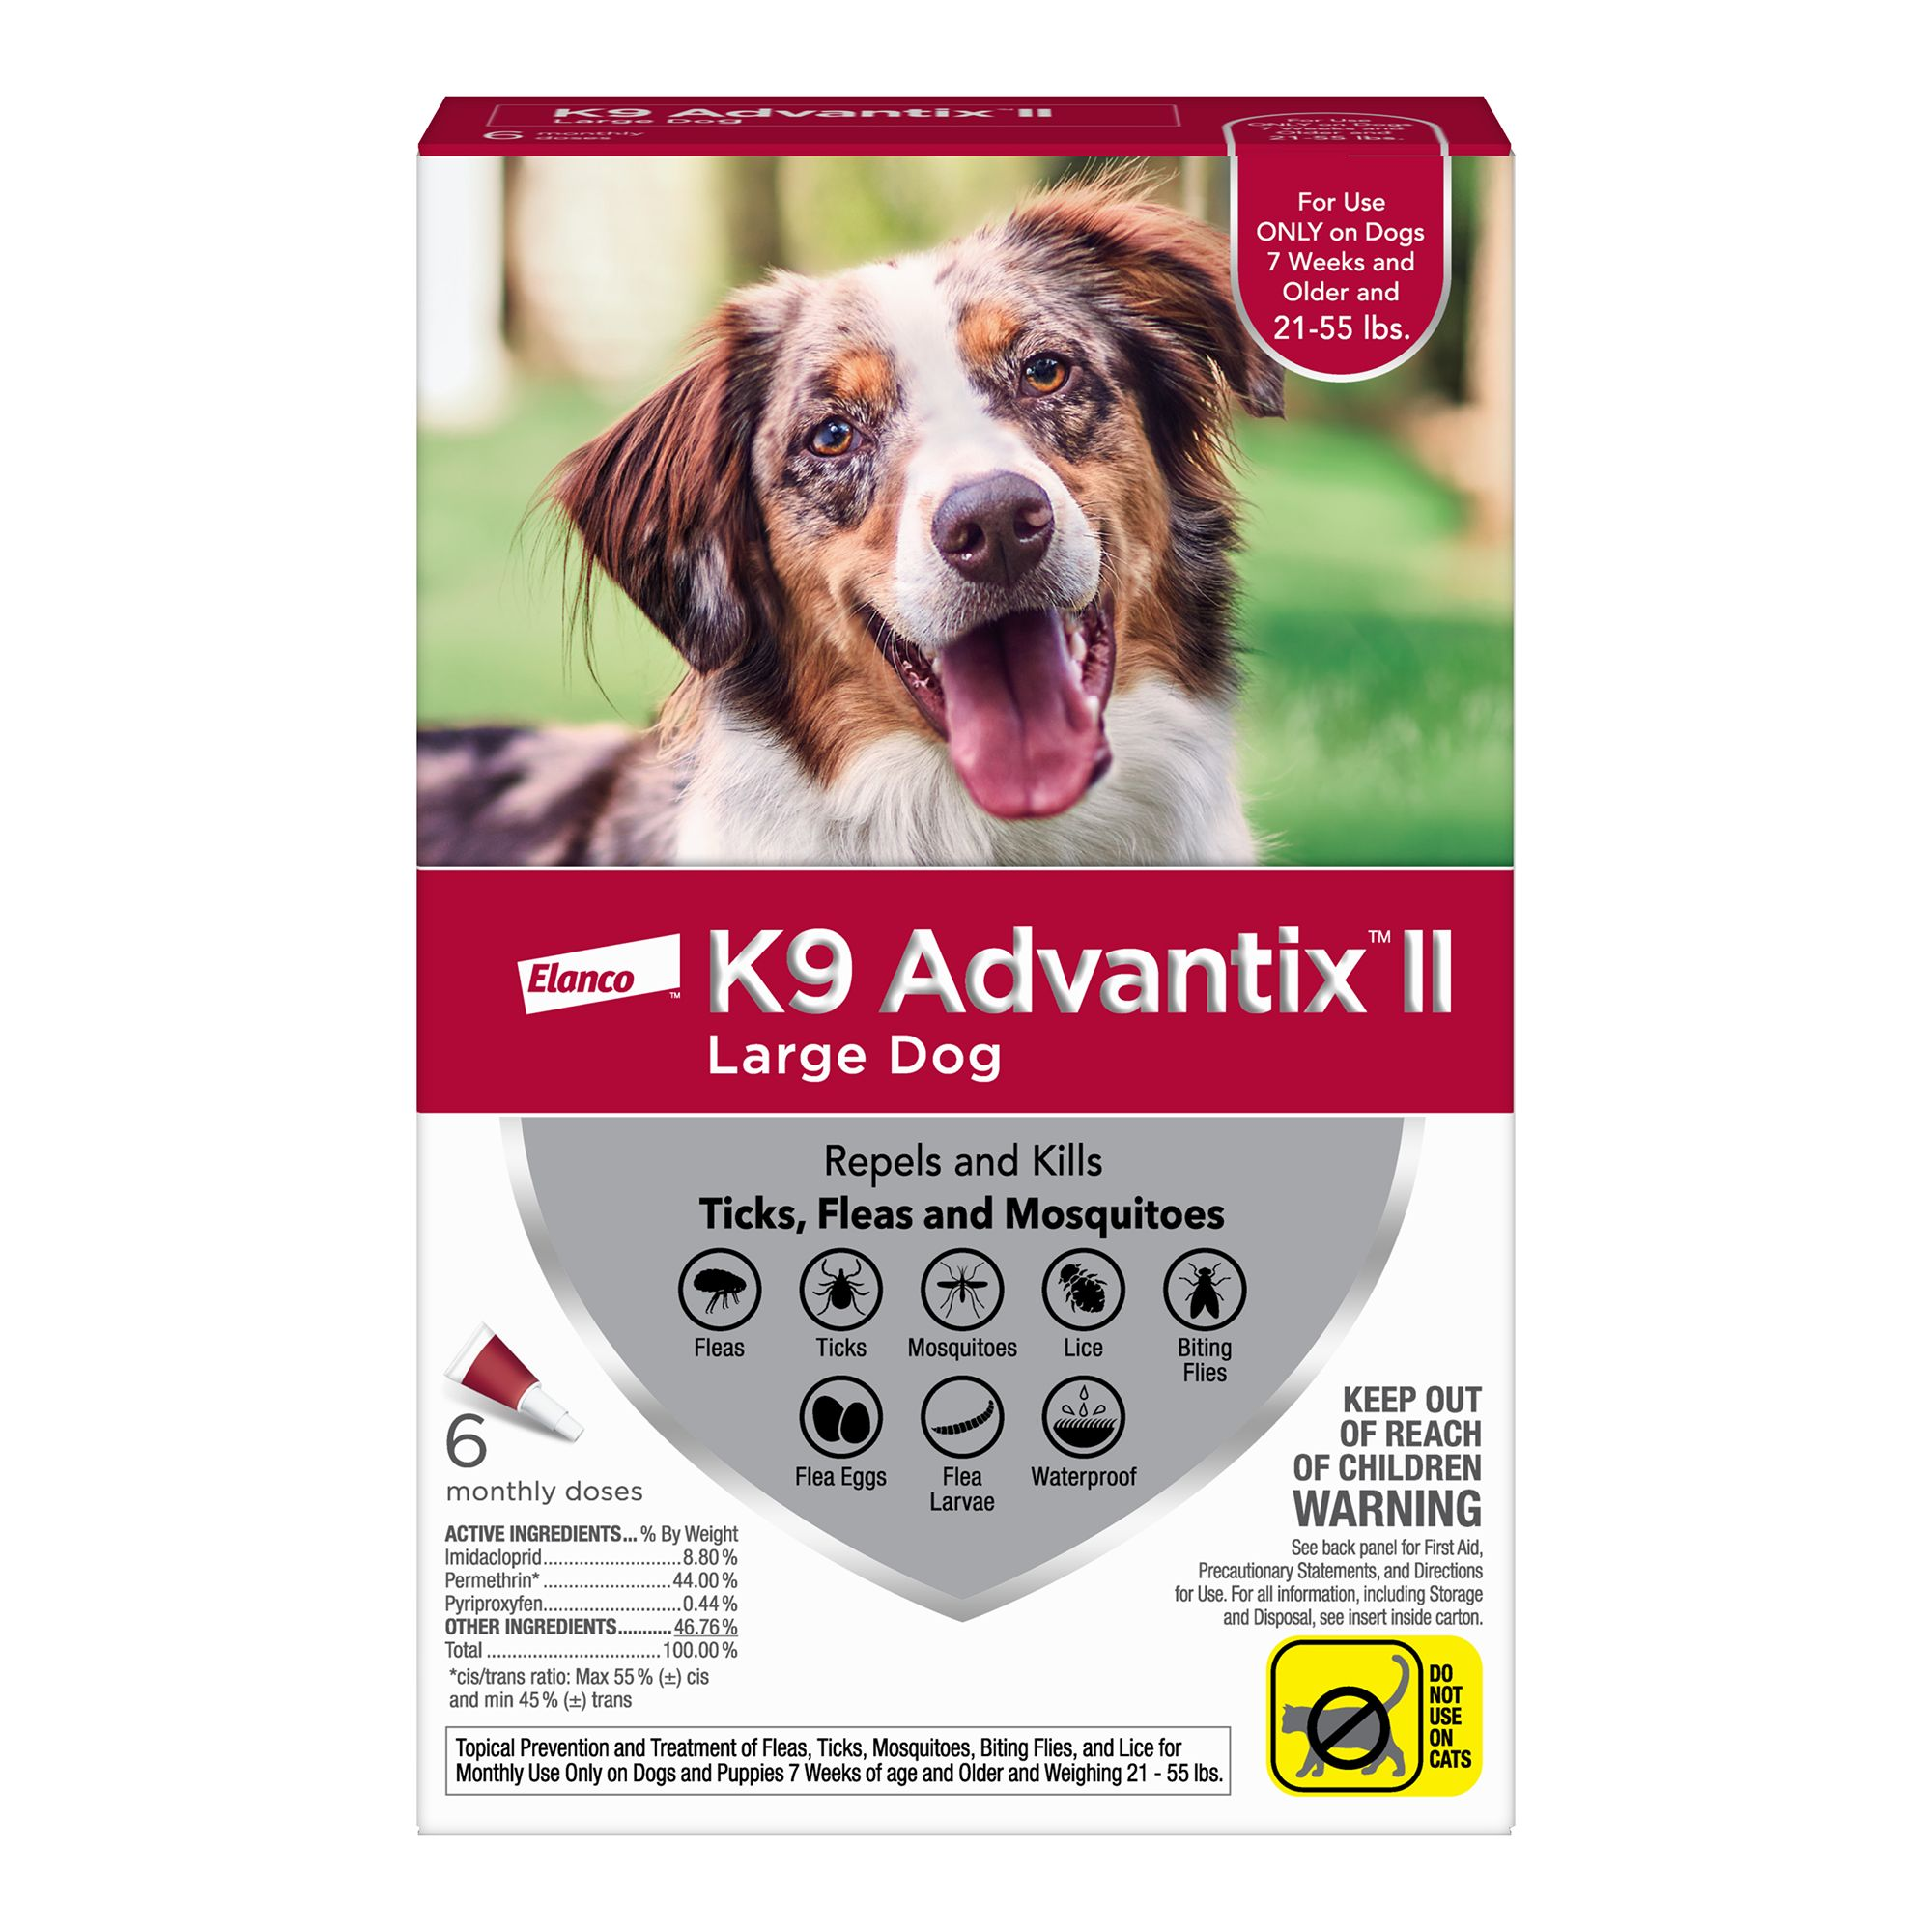 Flea & Tick Control: Flea Treatment for Dogs | PetSmart